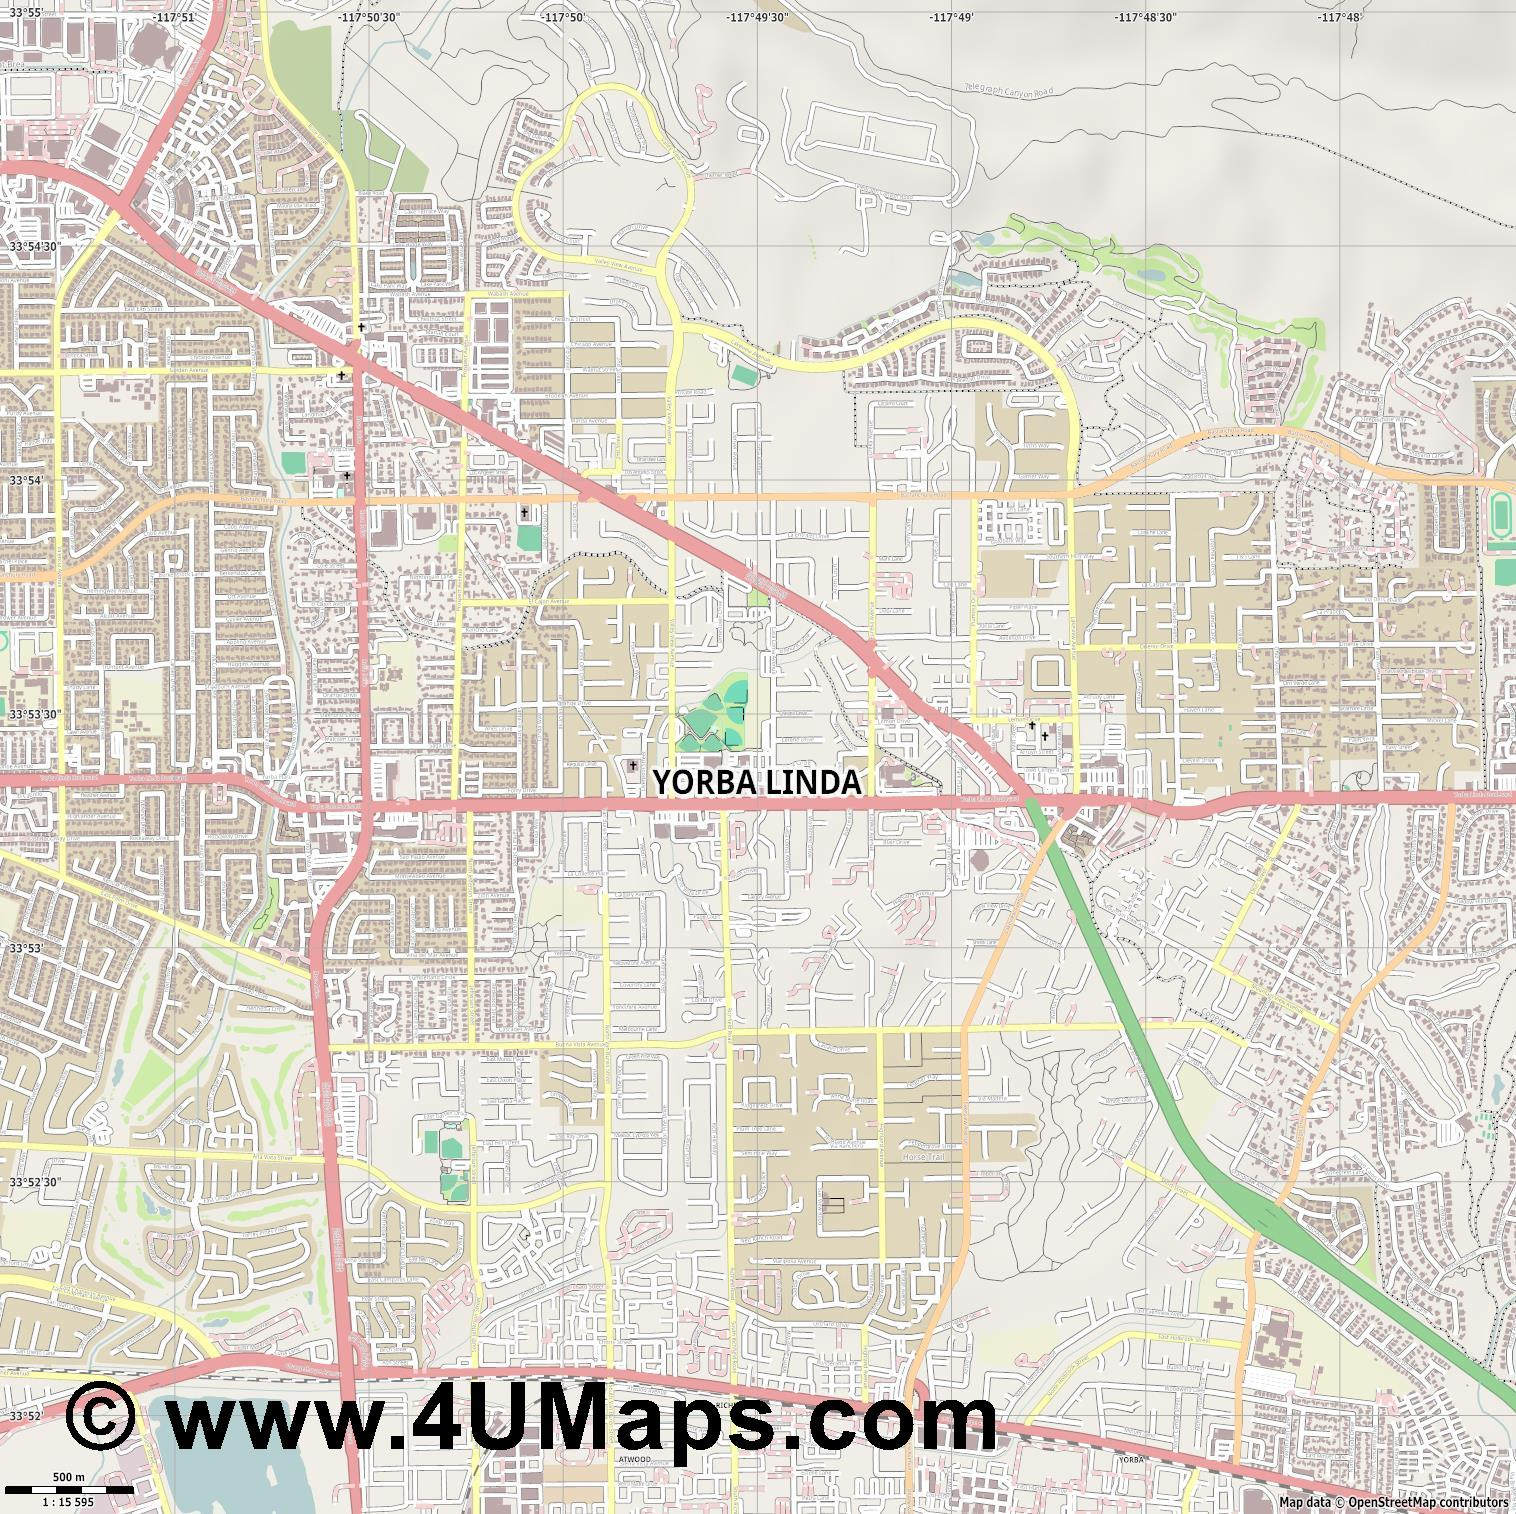 Yorba Linda  jpg ultra high detail preview vector city map